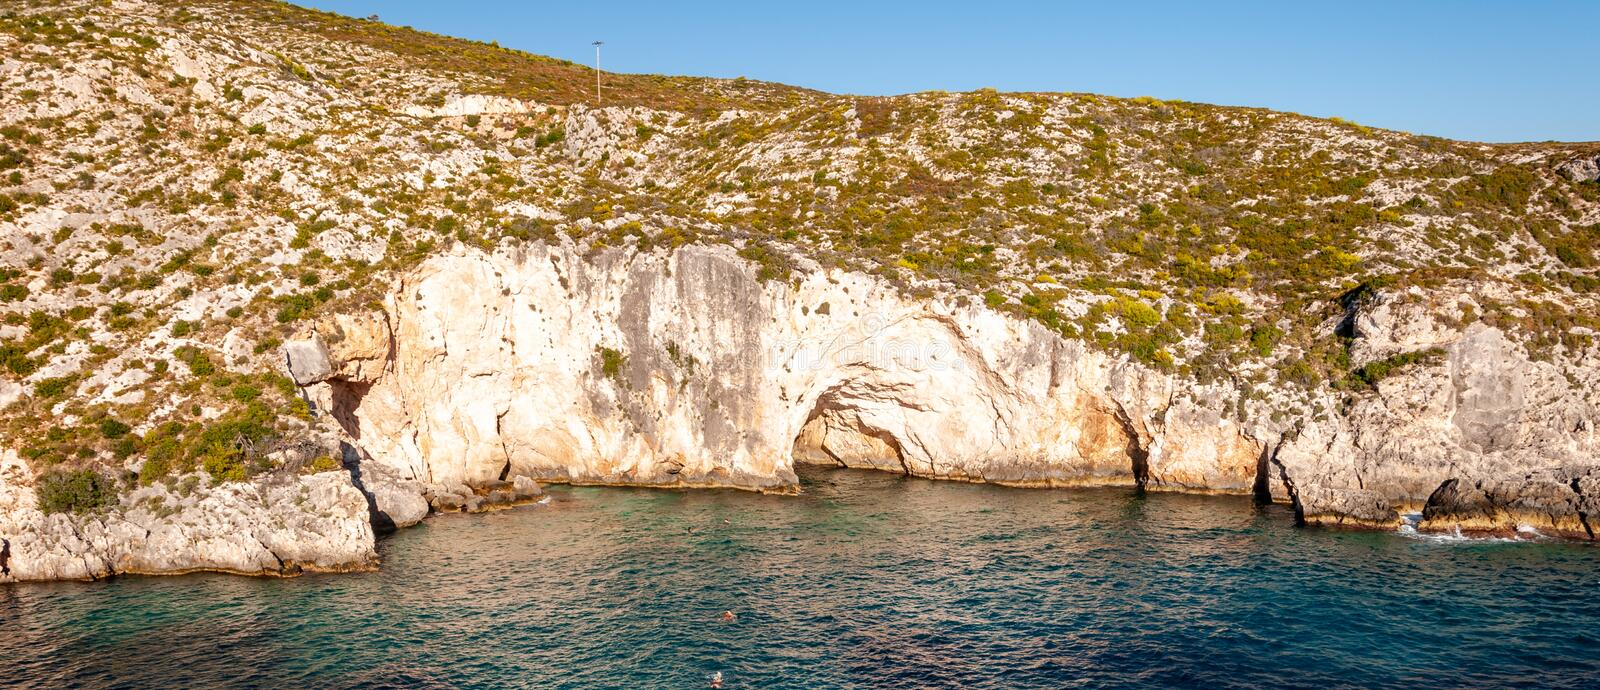 Zakynthos Island, Greece. A pearl of the Mediterranean with beaches and coasts suitable for unforgettable sea holidays. Kave of Keri stock photography